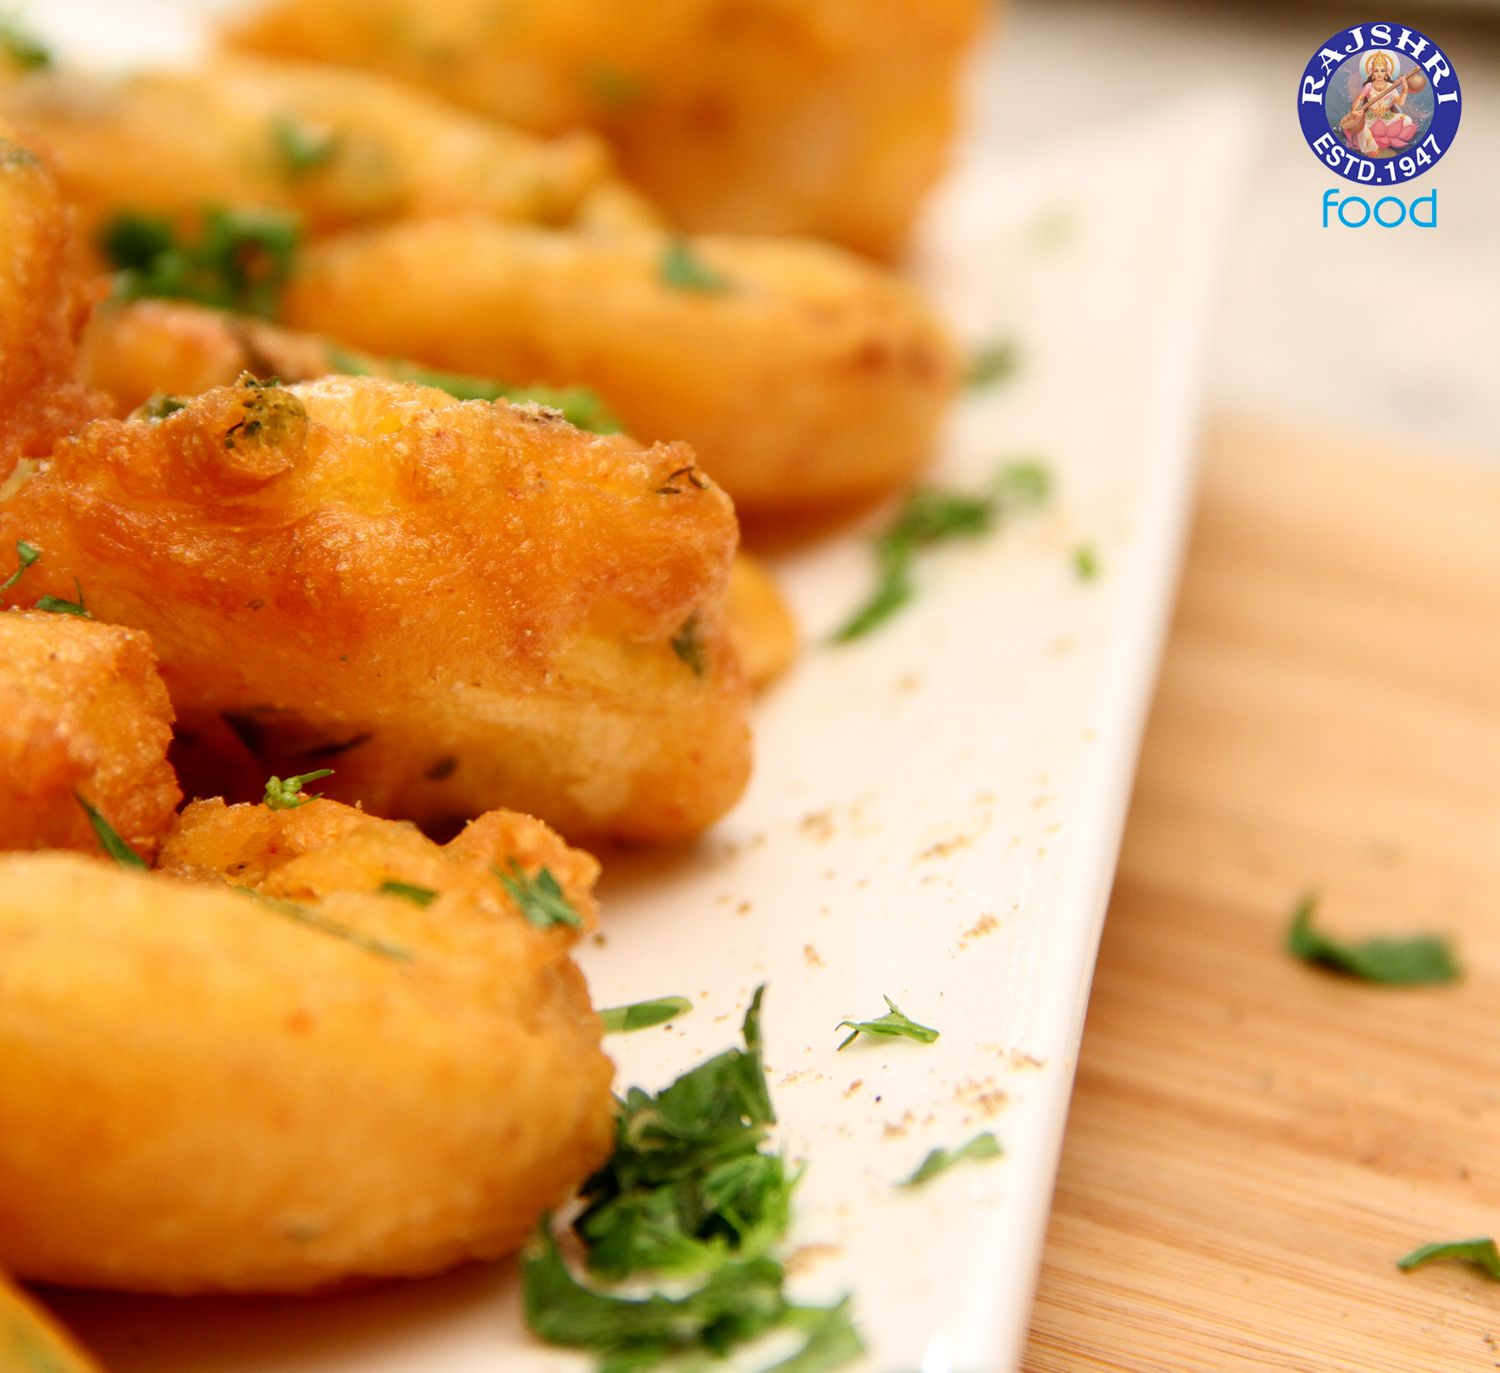 Pakoda potato onion fritters indian vegetarian fast food learn how to make pakoda potato onion fritters vegetarian fast food recipe by ruchi bharani pakoda is a mouth watering indian tea time snack and is forumfinder Gallery